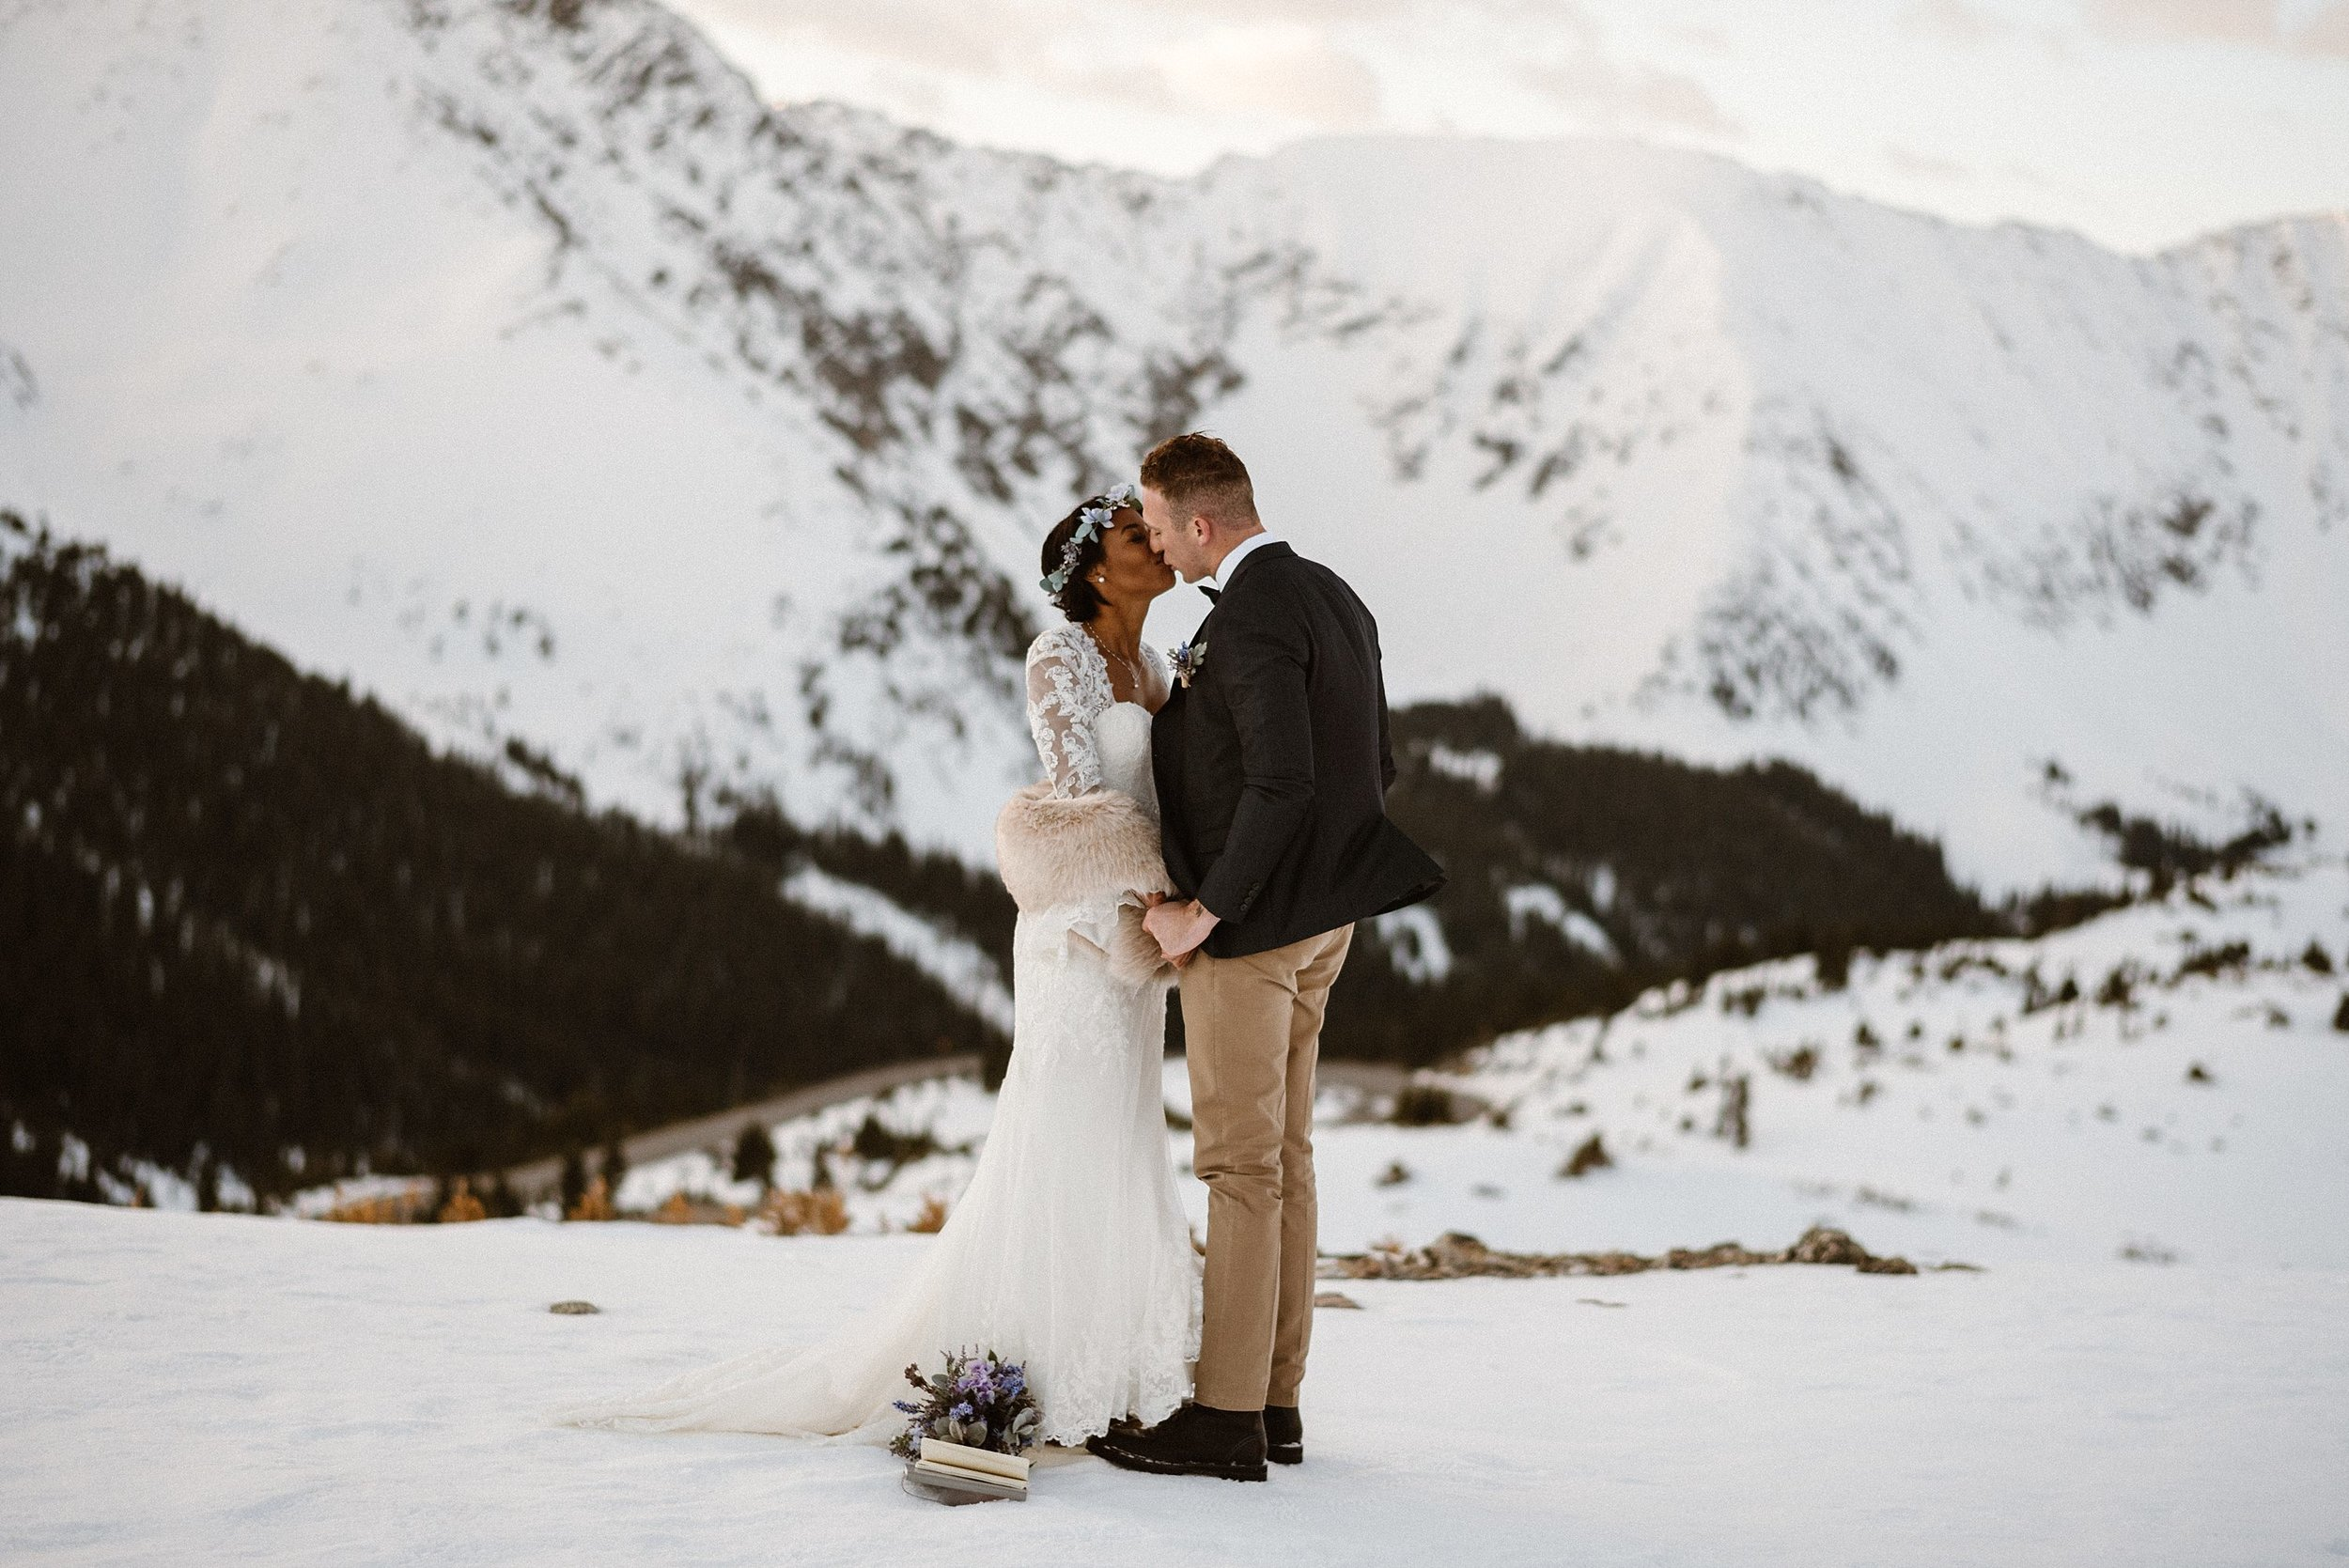 Sharing their first kiss as husband and wife high above Loveland Pass lakes, Mikayla and Jared were just about to start on their adventurous hiking elopement all through Silverthorne and Breckinridge, Colorado. Photographed by intimate wedding photographer Maddie Mae.